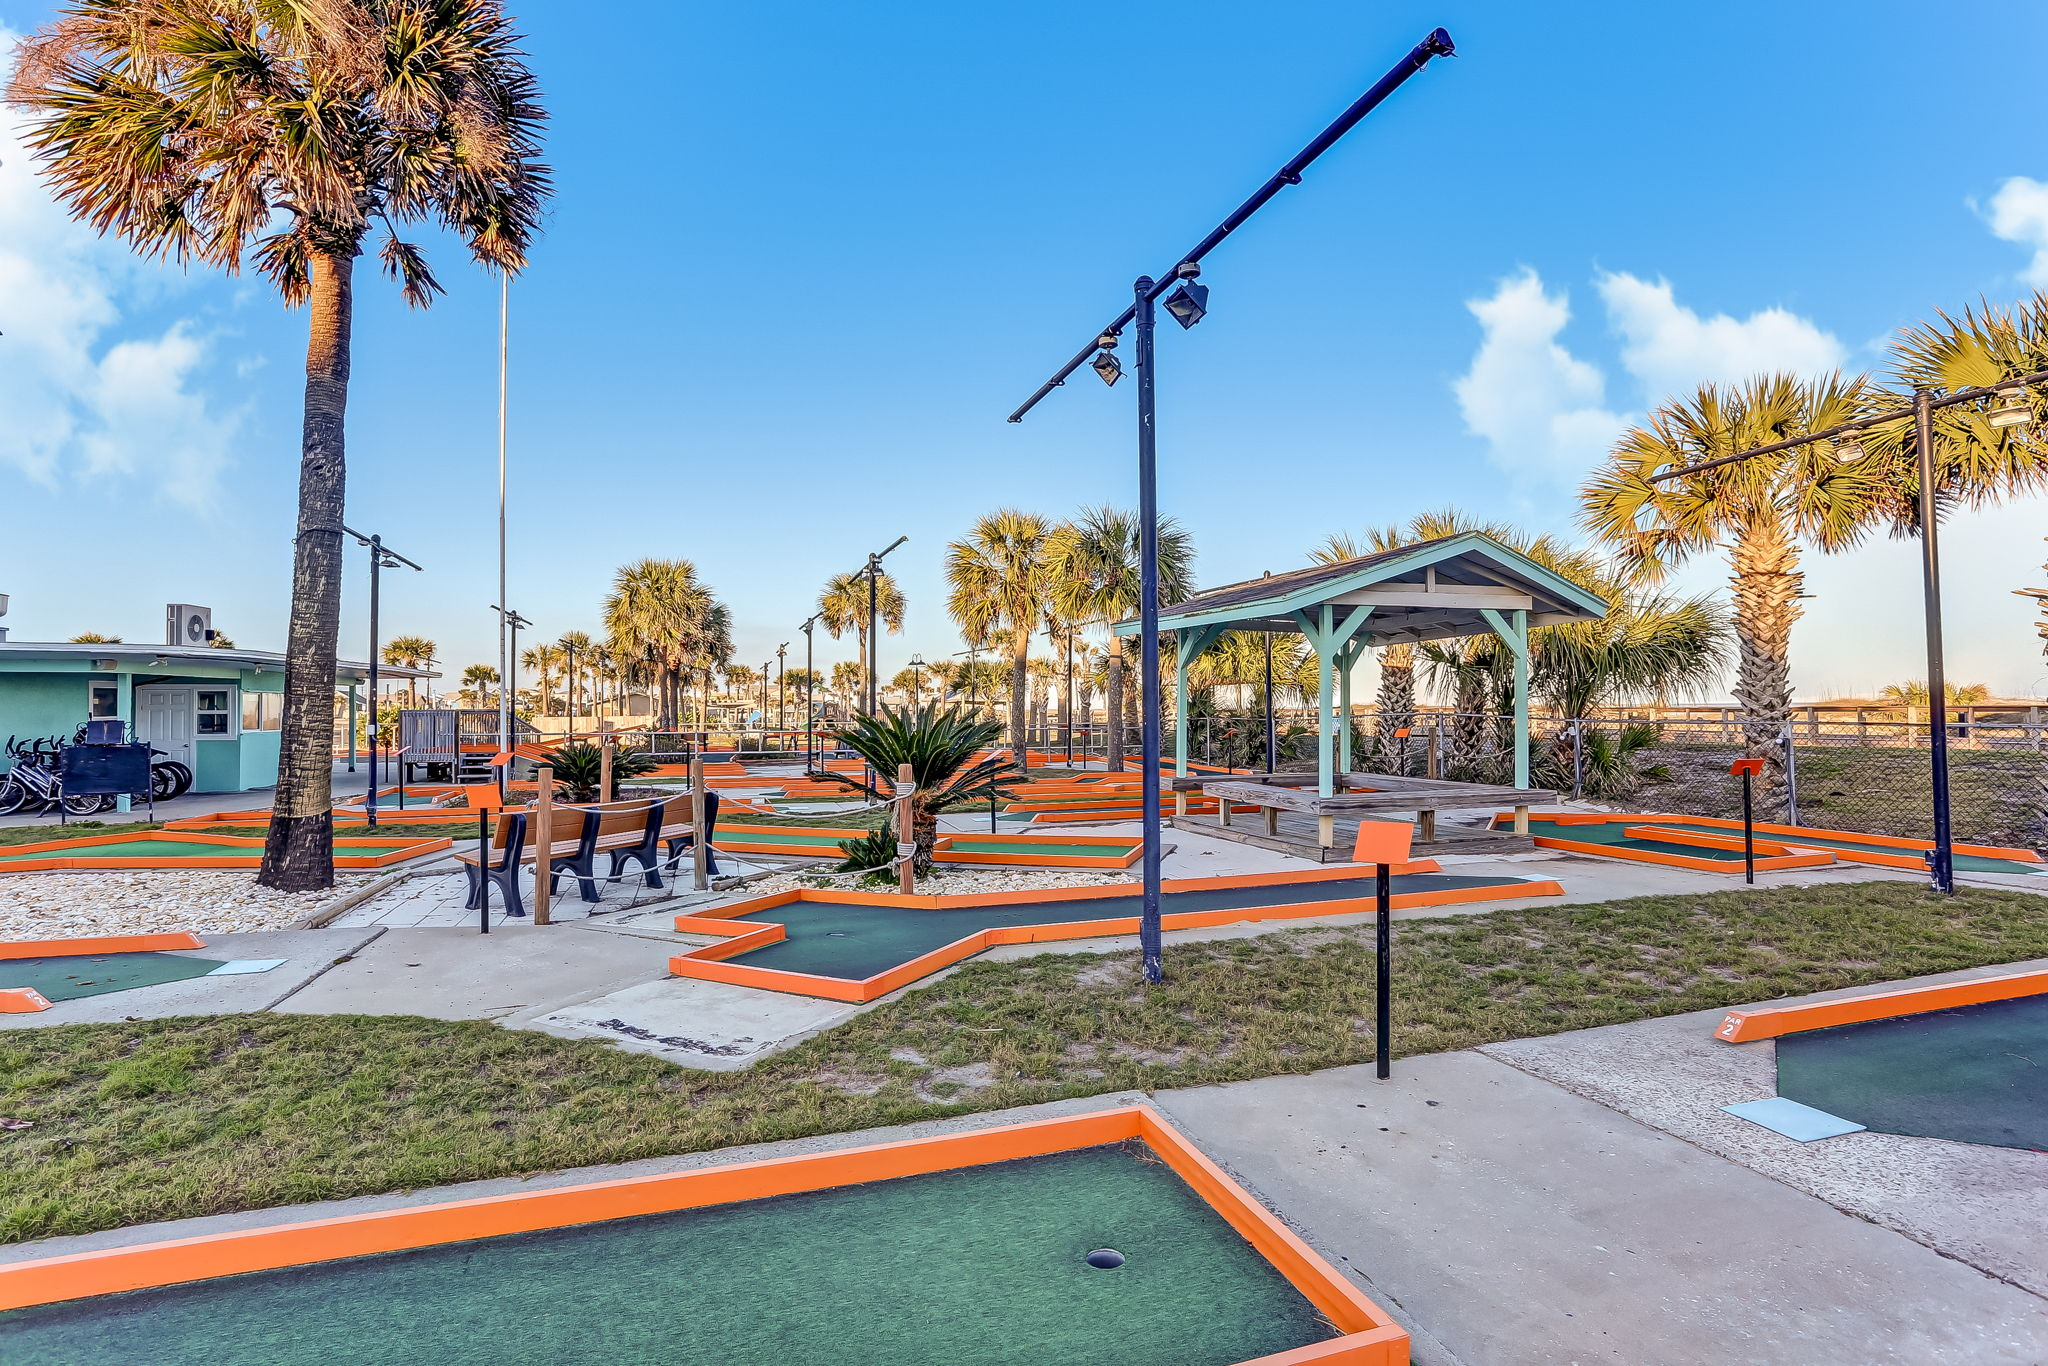 Nearby activities are endless, like Putt Putt by the beach